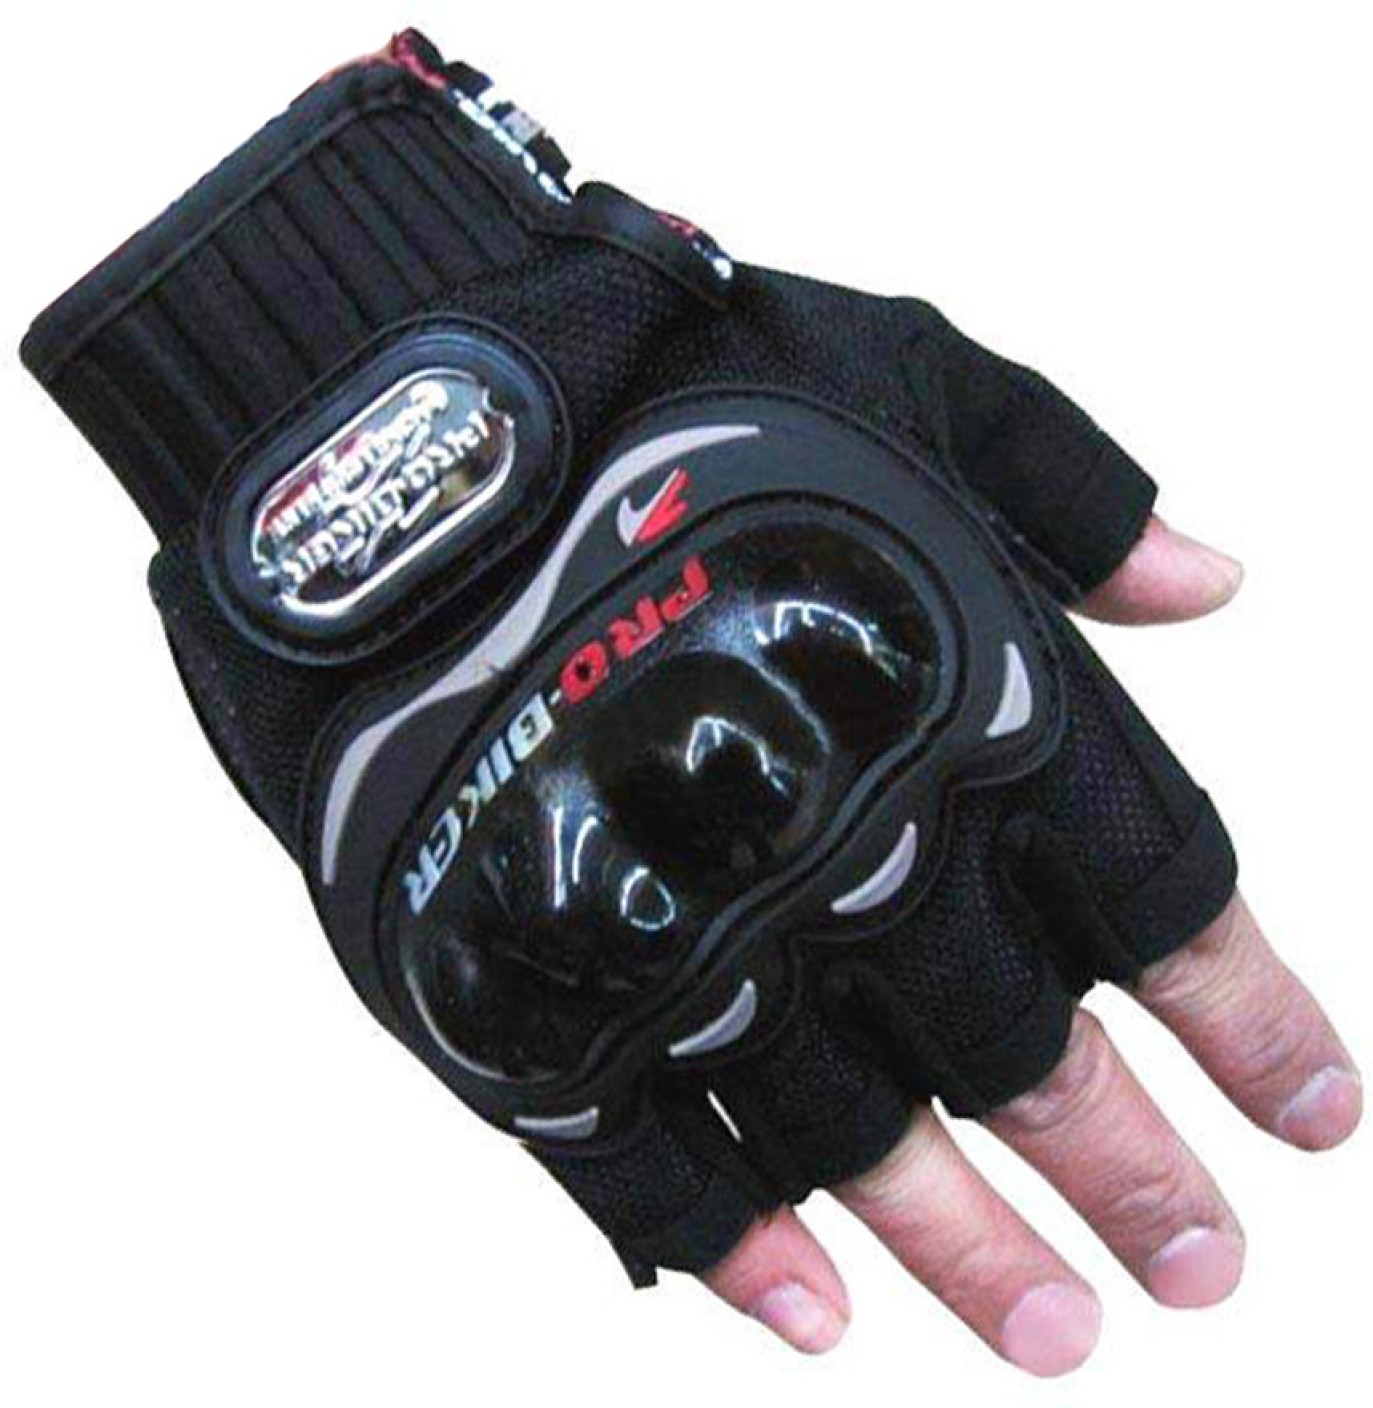 Driving gloves online shopping india - Add To Cart Buy Now